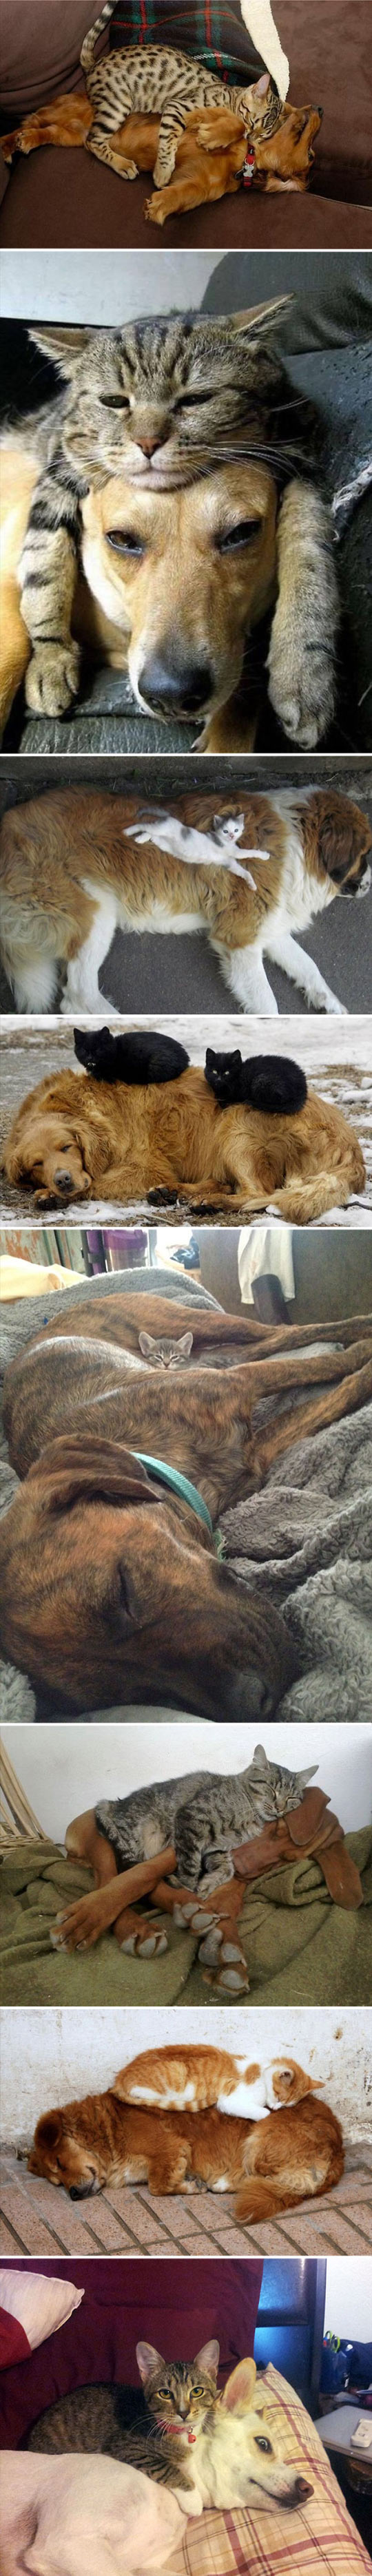 funny-dogs-cat-pillow-sleeping-couch